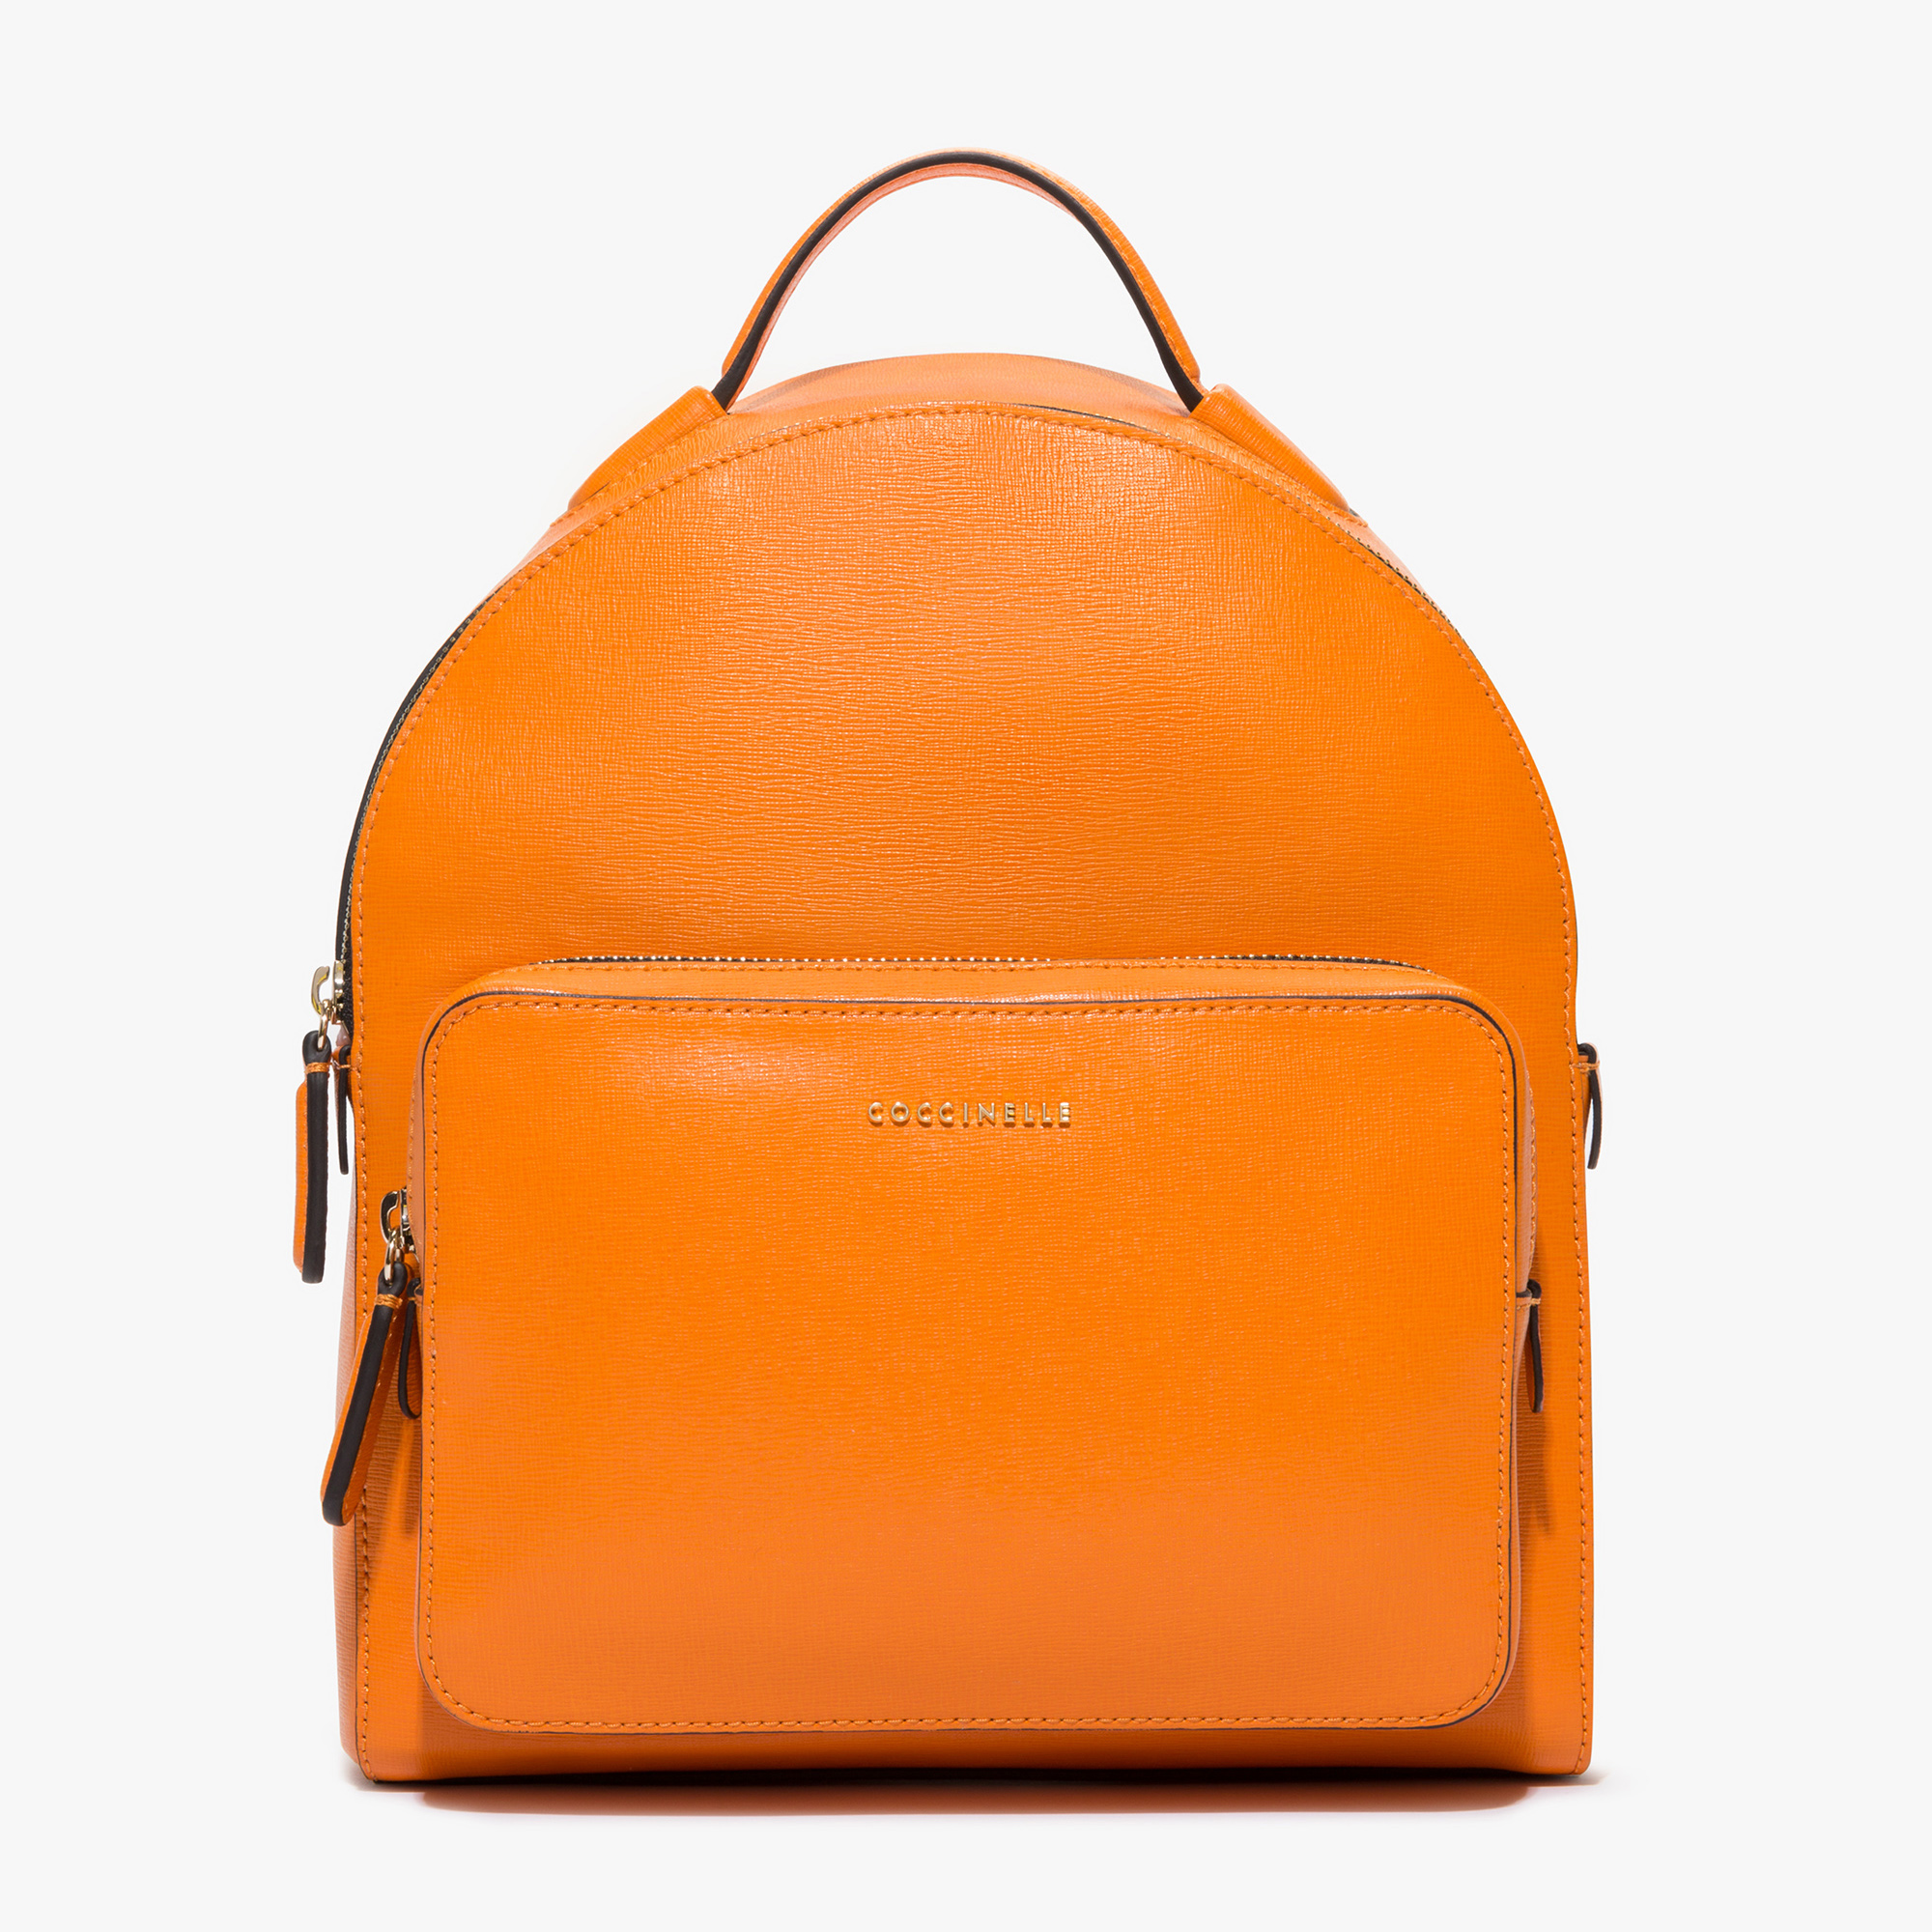 Clementine Saffiano Leather Backpack in Gerbera | Coccinelle